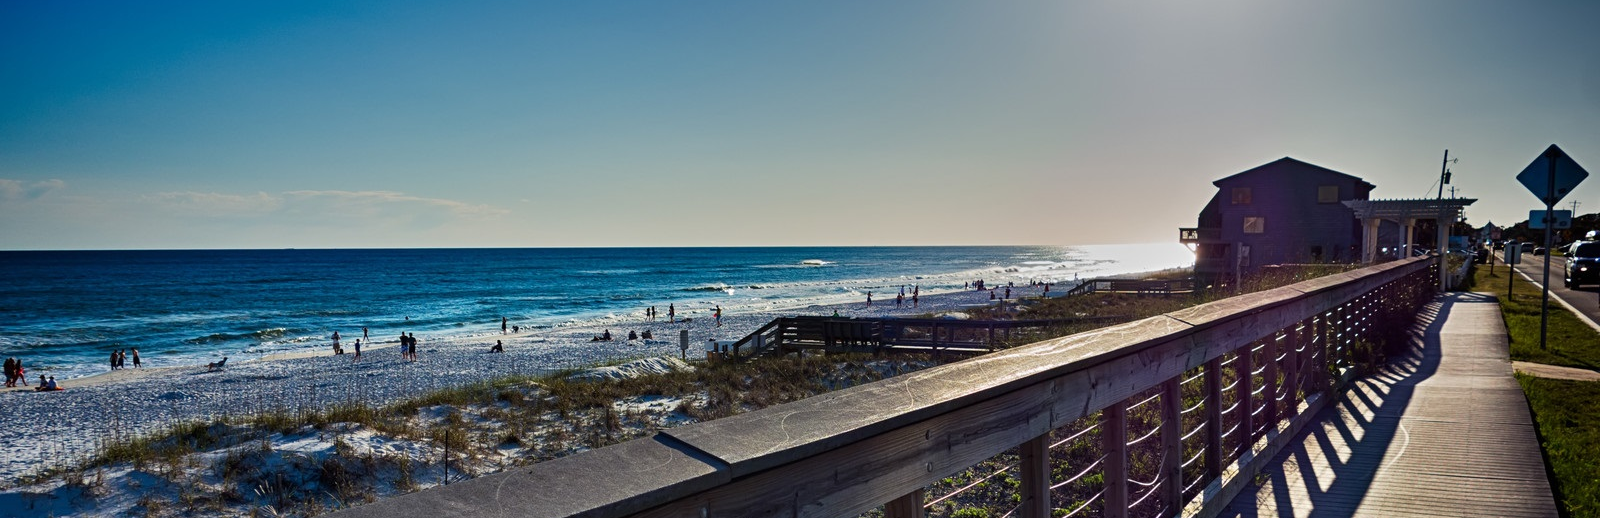 Emerald Coast Snowbird Destination Guide